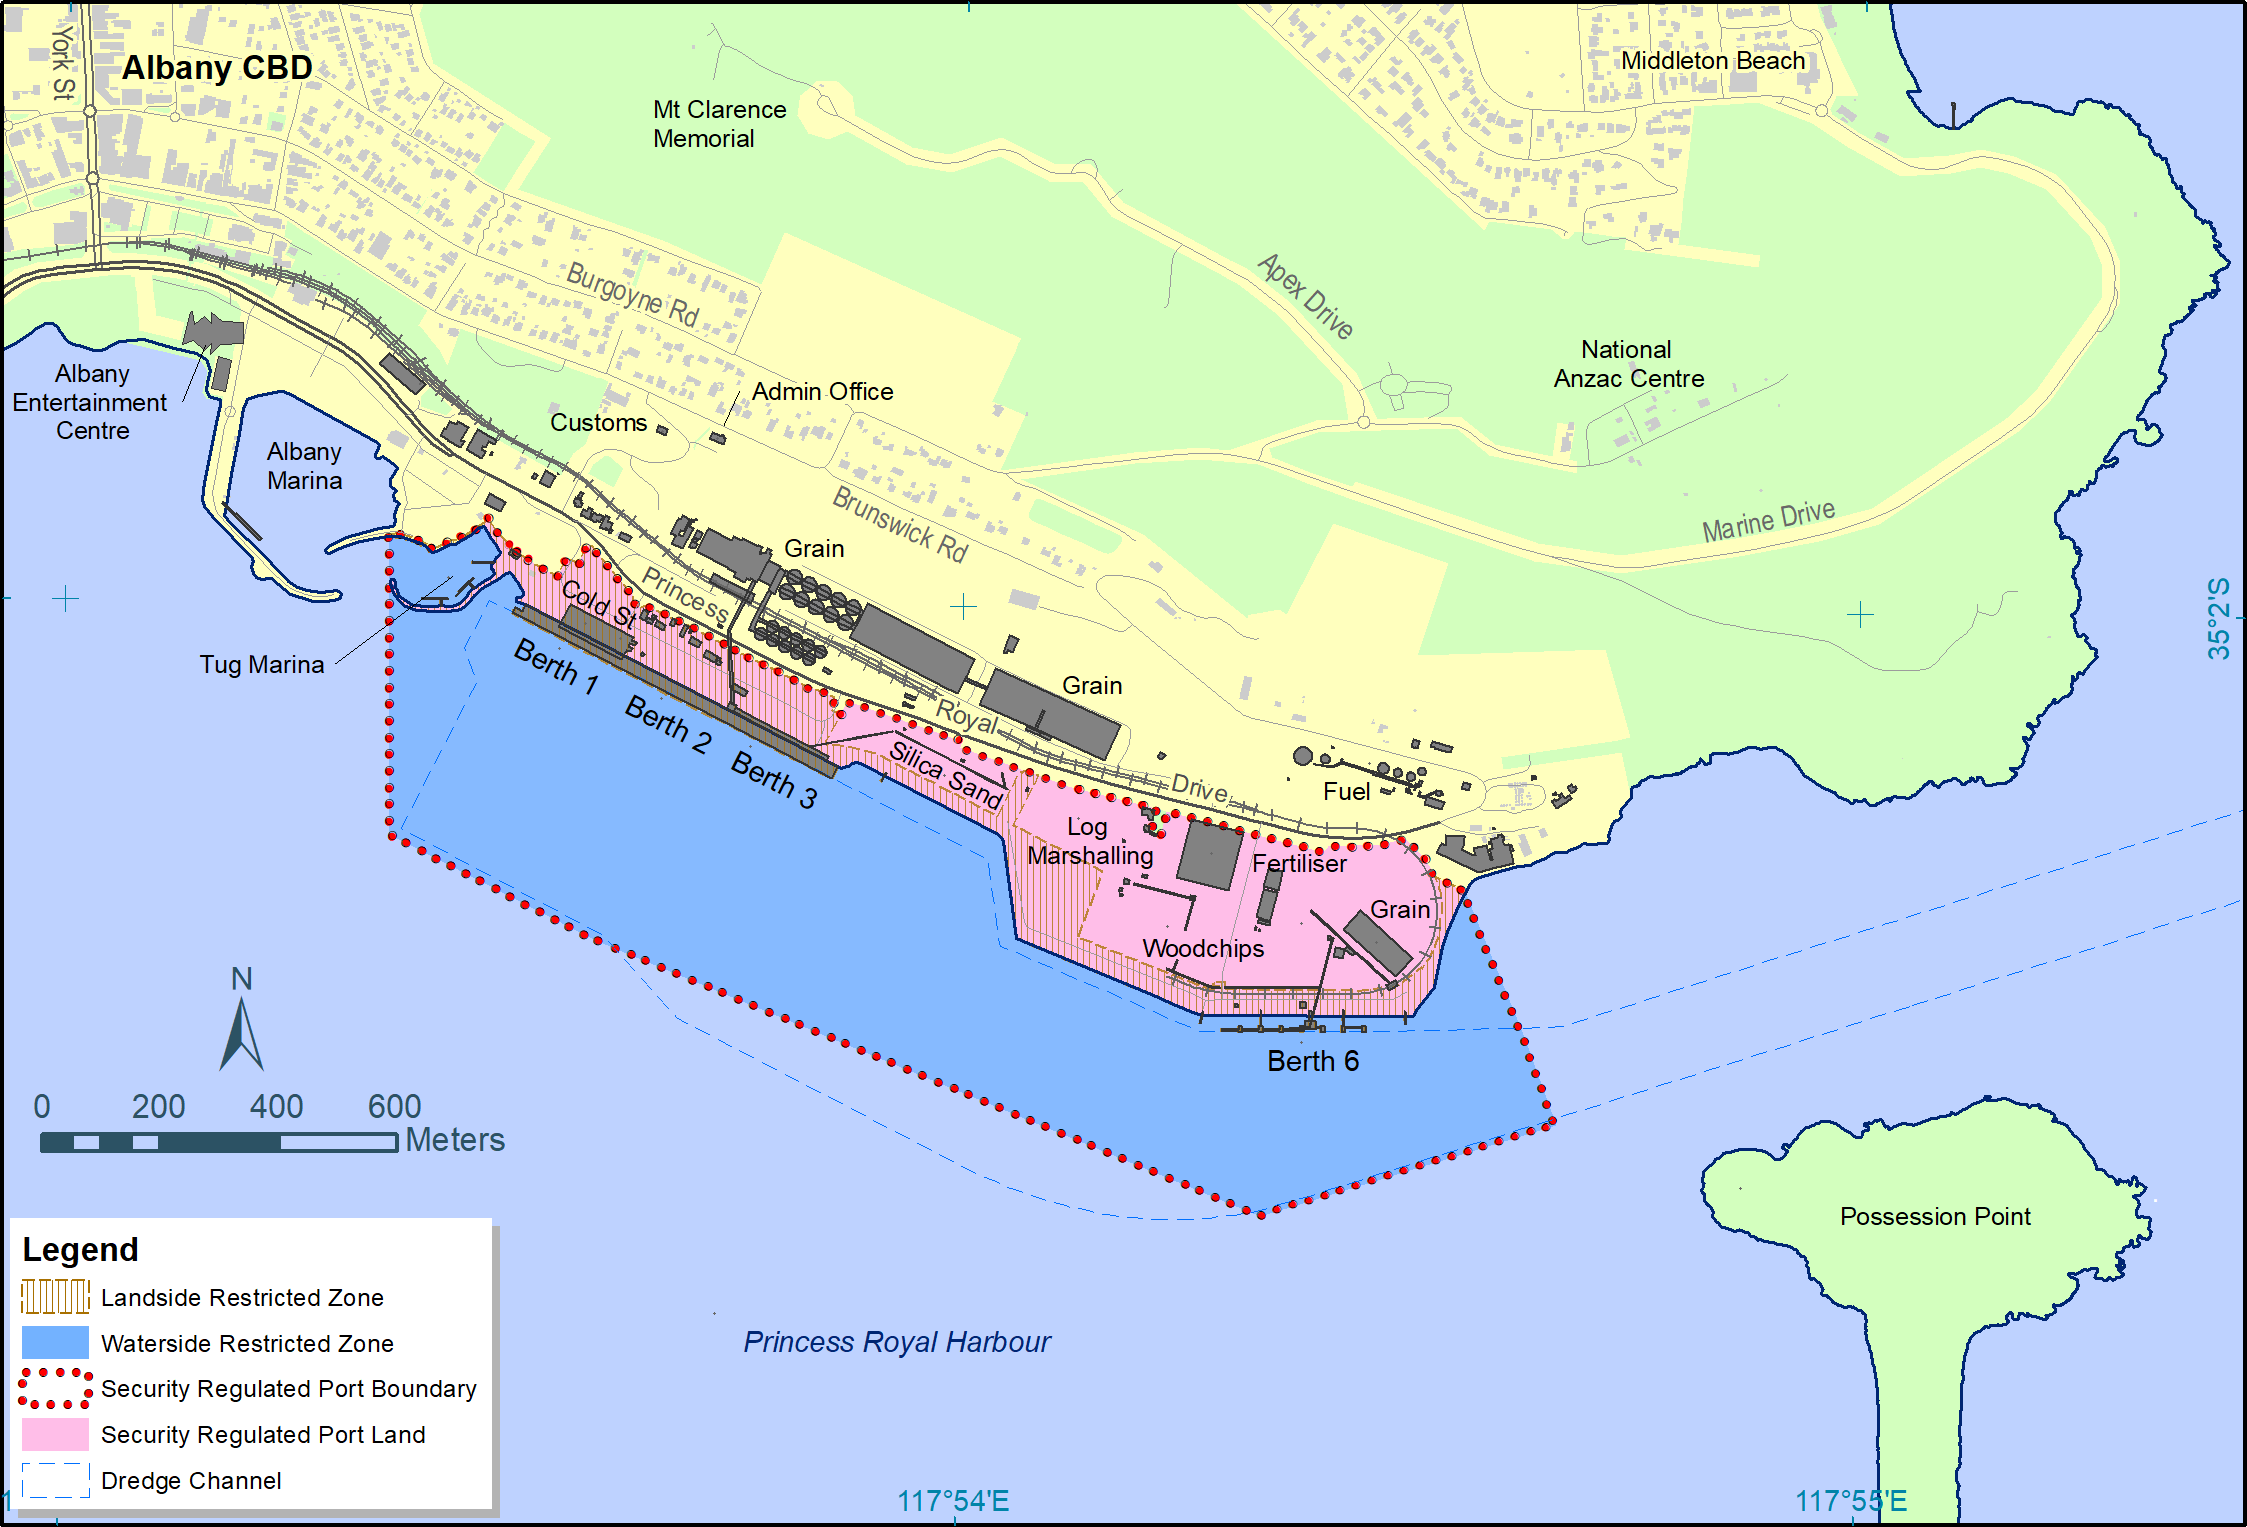 Albany Port Layout and Security Zones